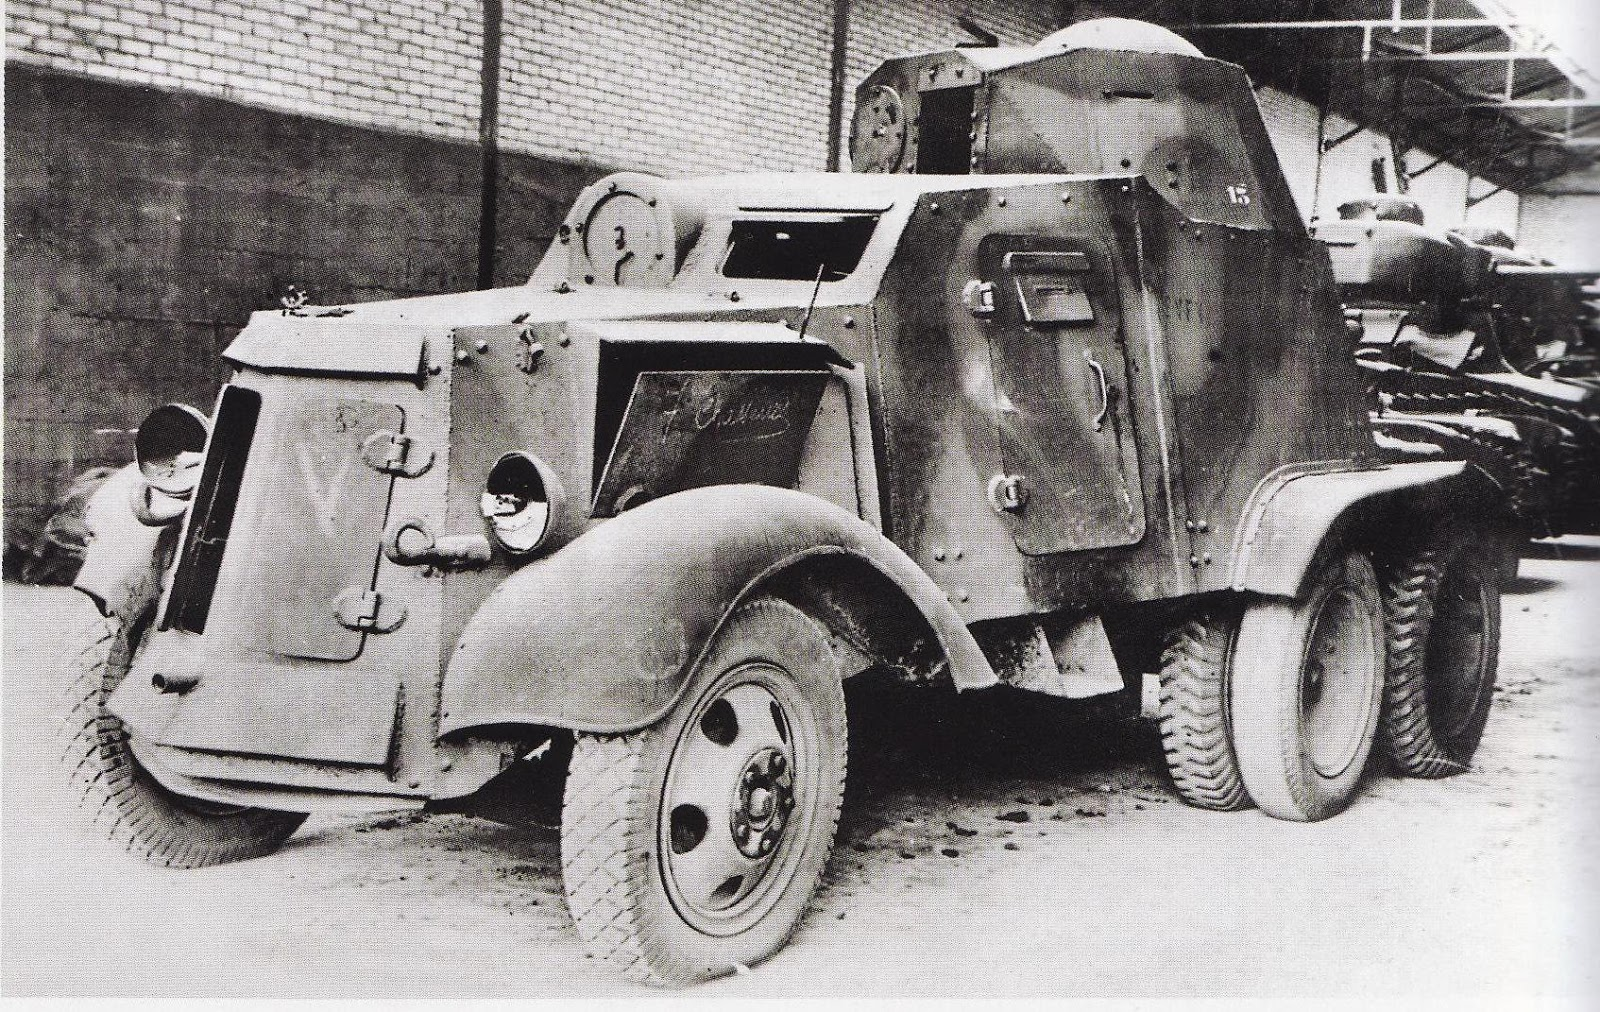 Camouflaged AAC-1937, in a storage warehouse in France. French tanks can be seen behind it. Possibly in original Republican colors.